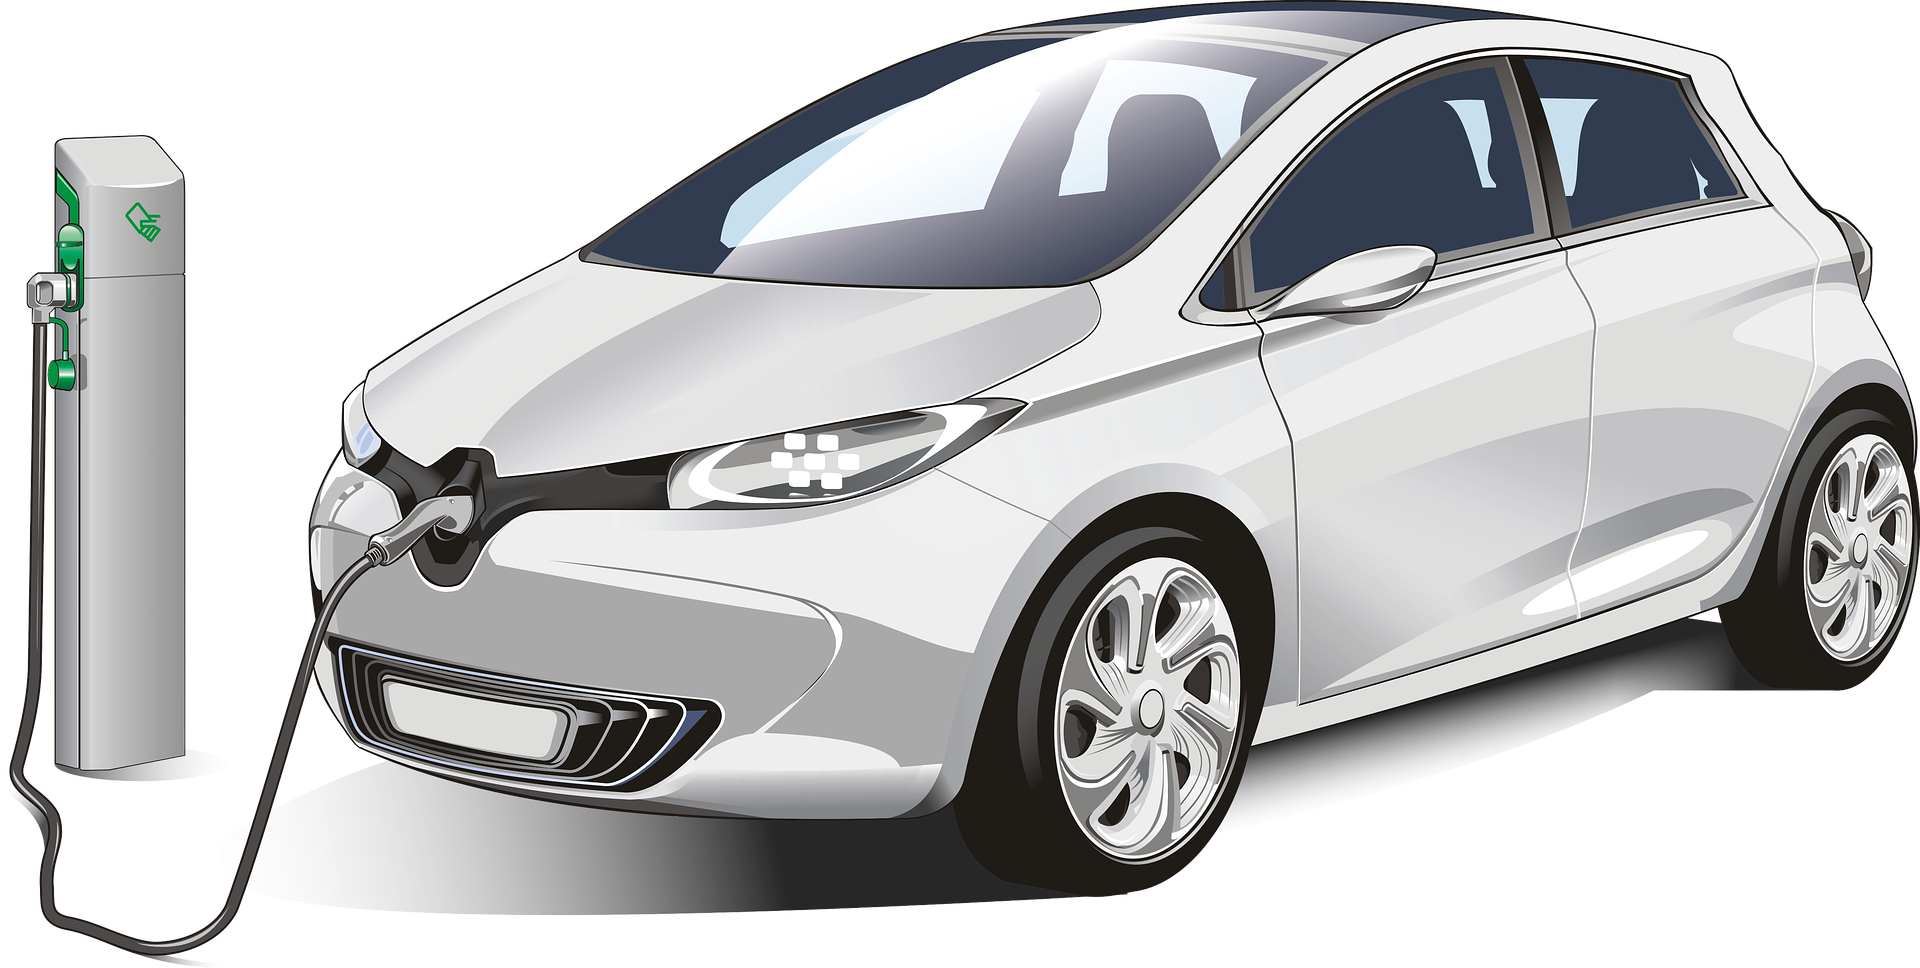 Technology in Electric Cars